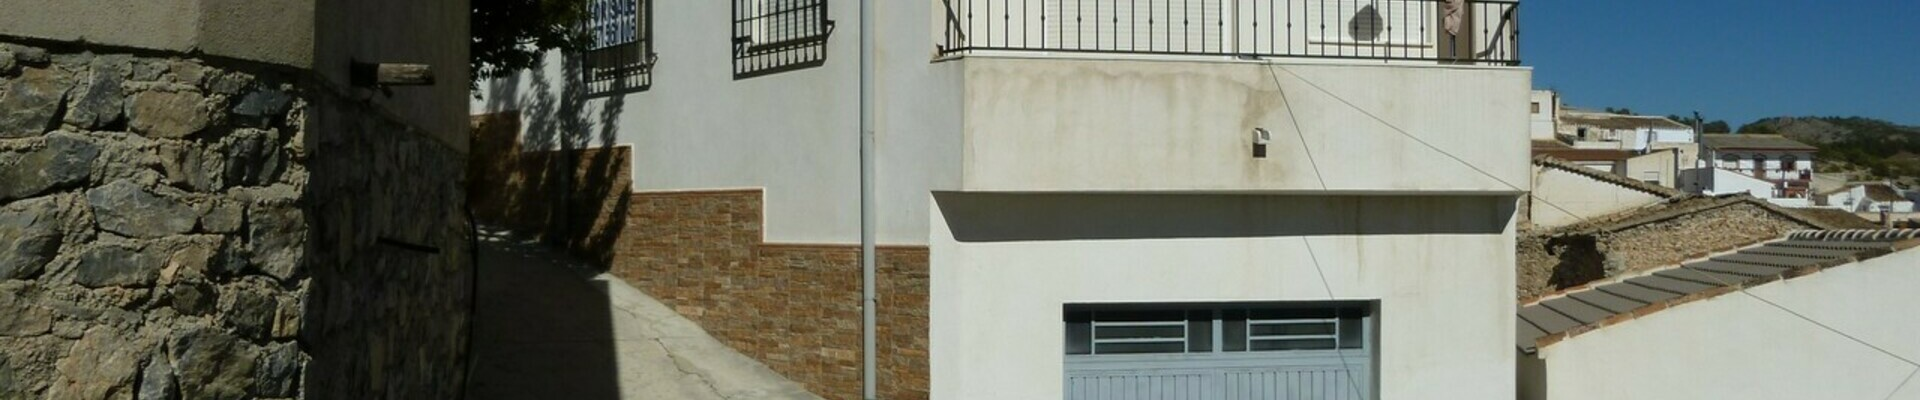 AF748: 3 Bedroom Townhouse for Sale